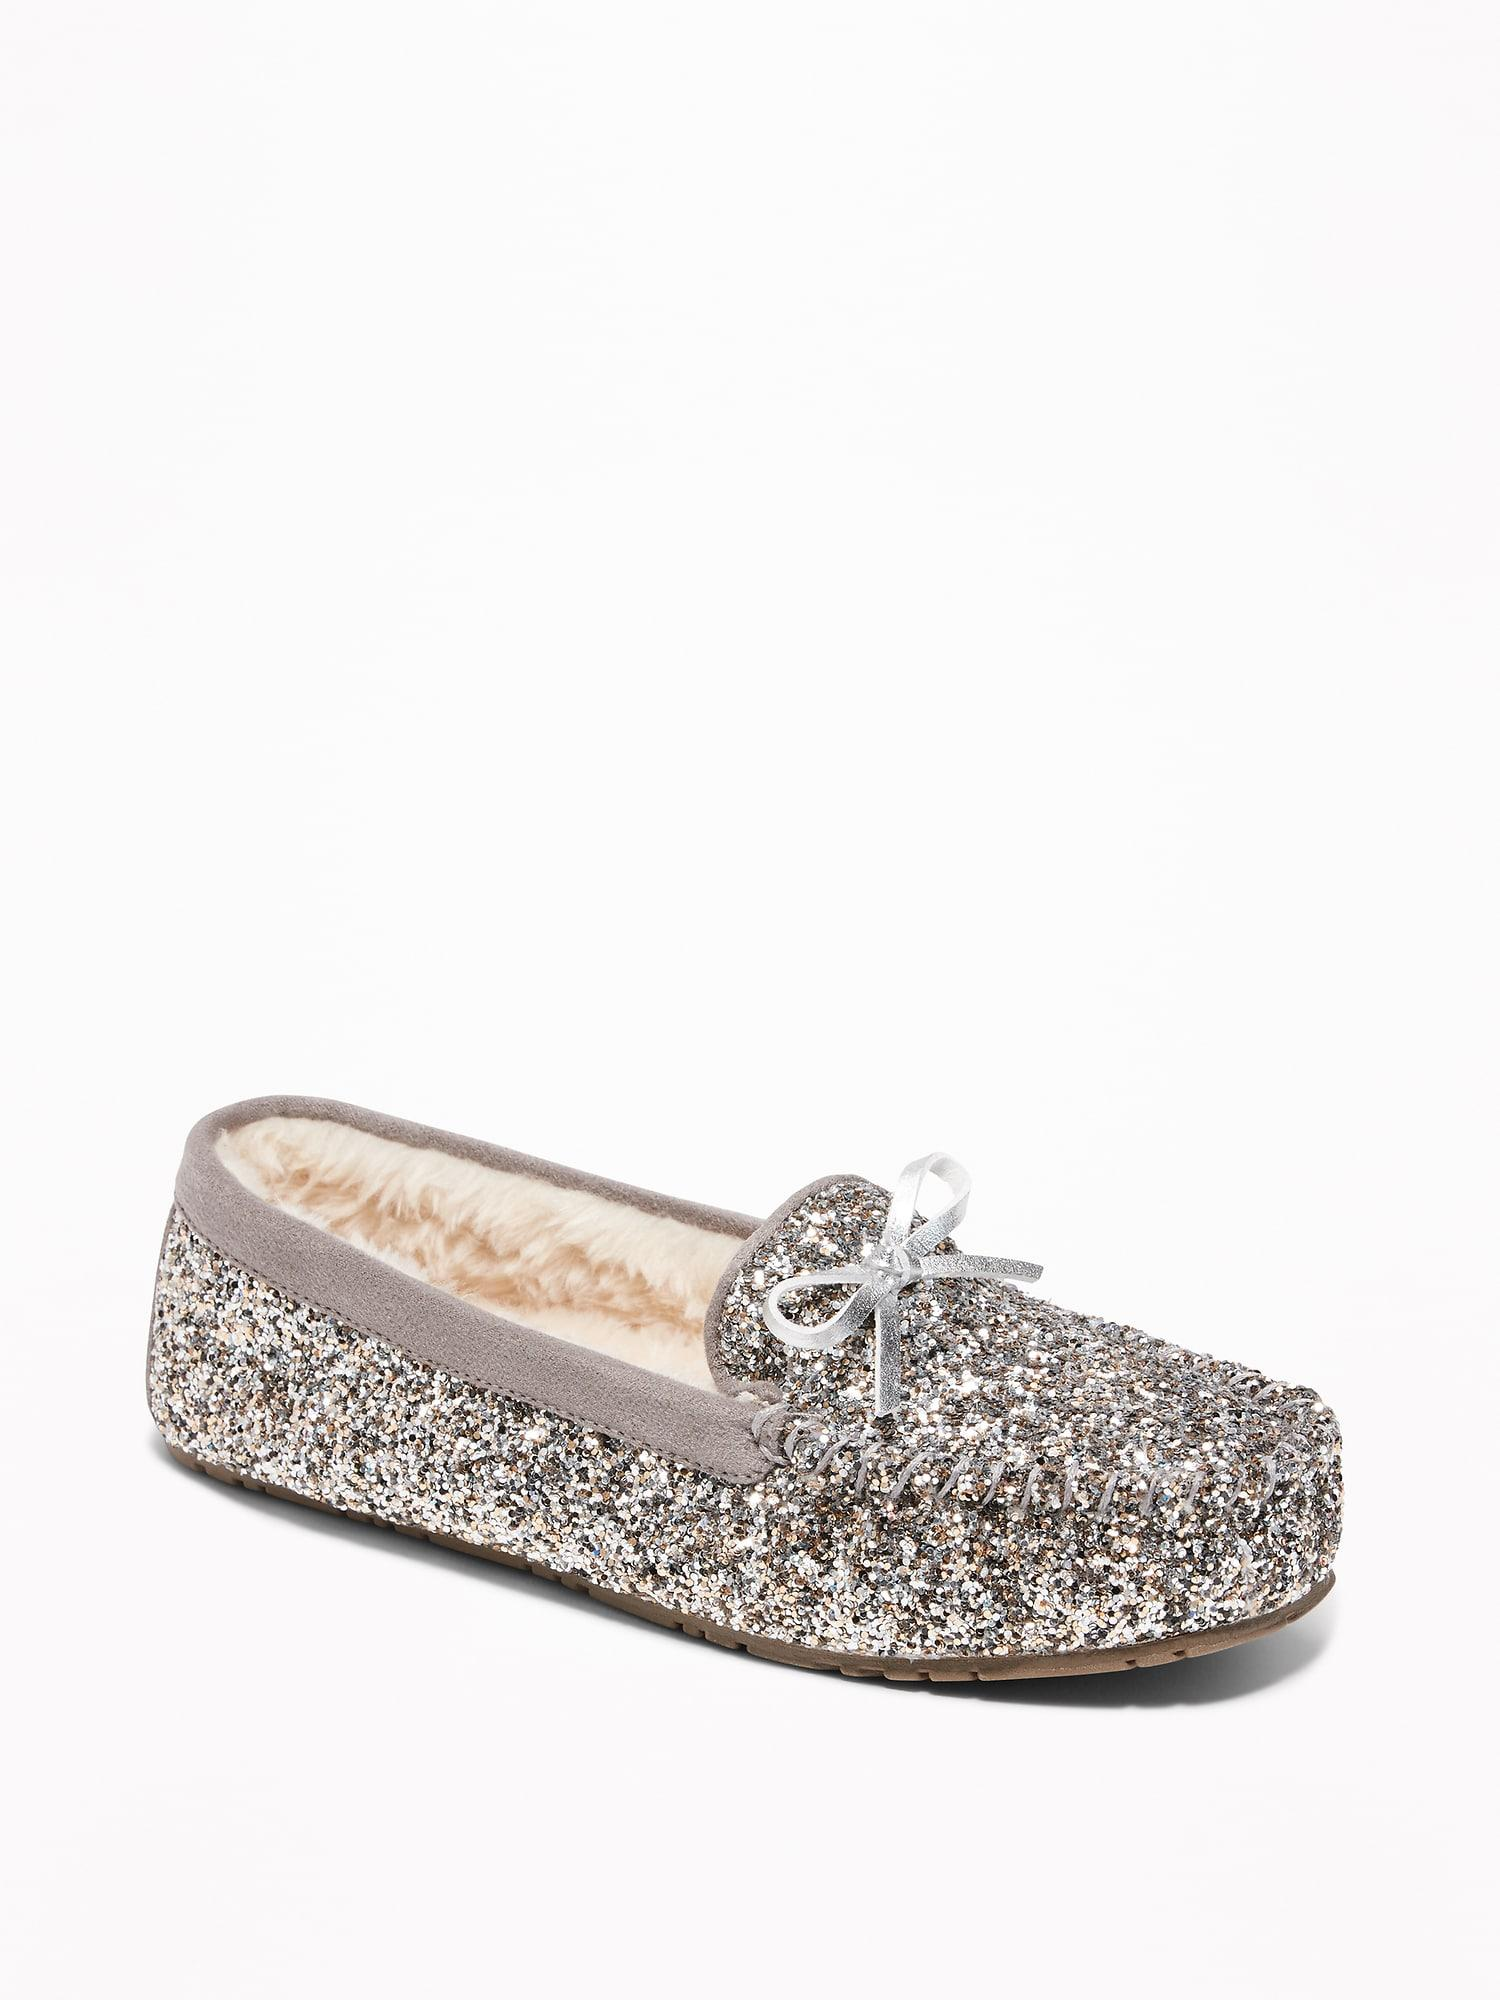 Old Navy Glitter Sherpa-lined Moccasin